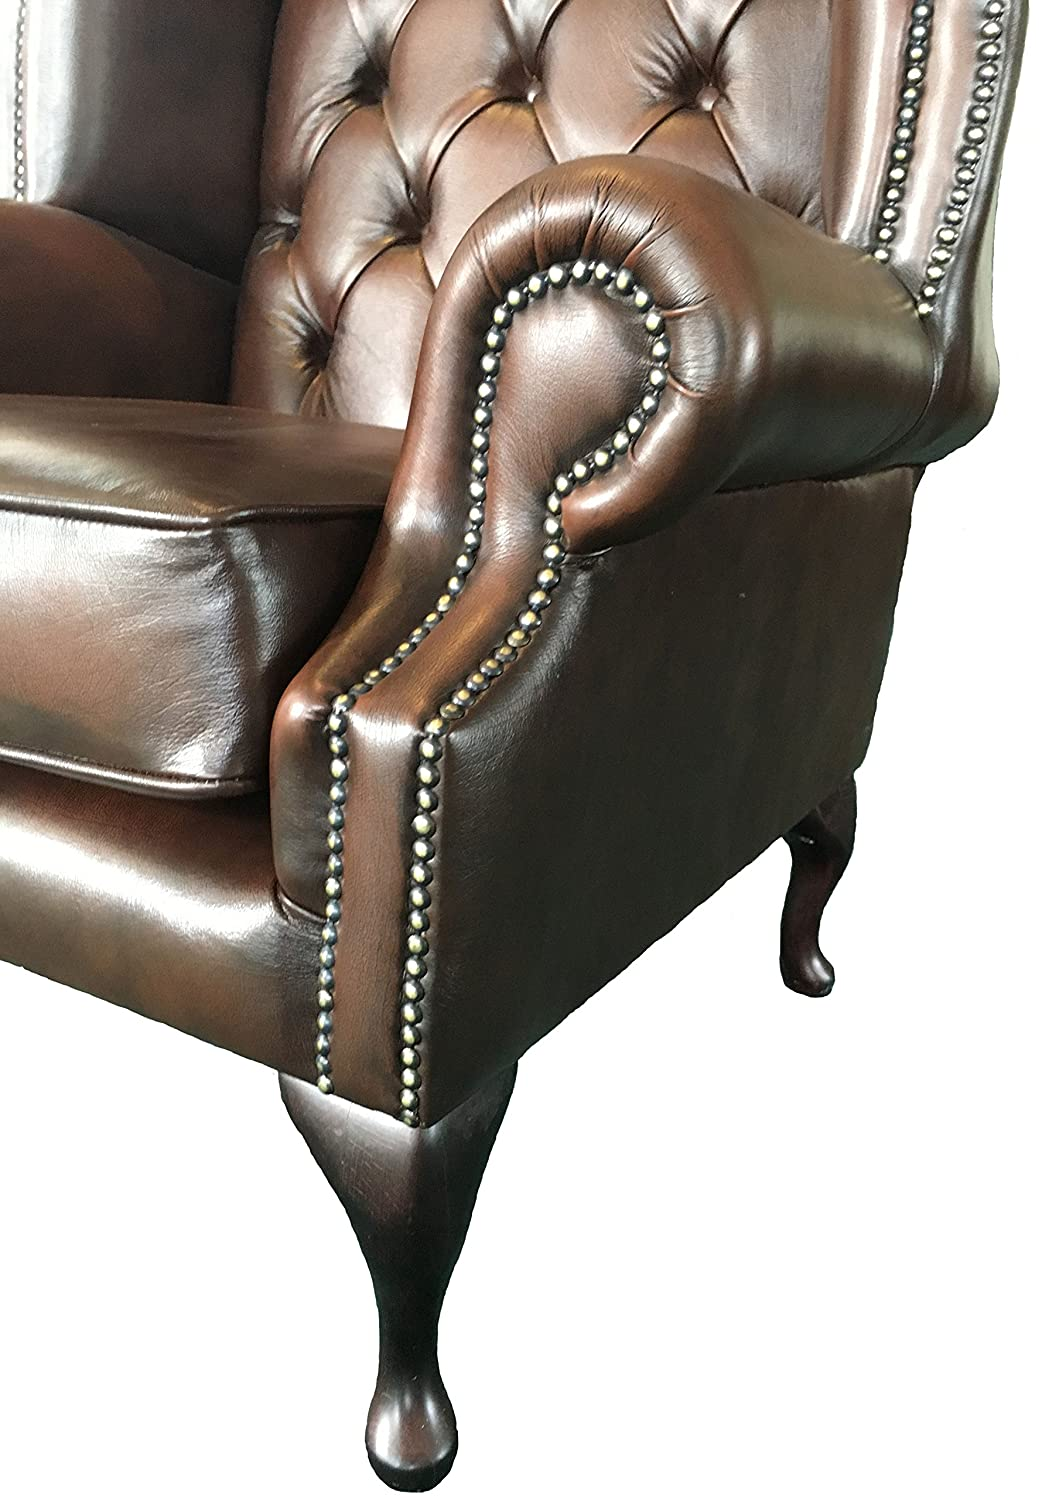 Chesterfield Antique Brown Genuine Leather Queen Anne Armchair:  Amazon.co.uk: Kitchen & Home - Chesterfield Antique Brown Genuine Leather Queen Anne Armchair